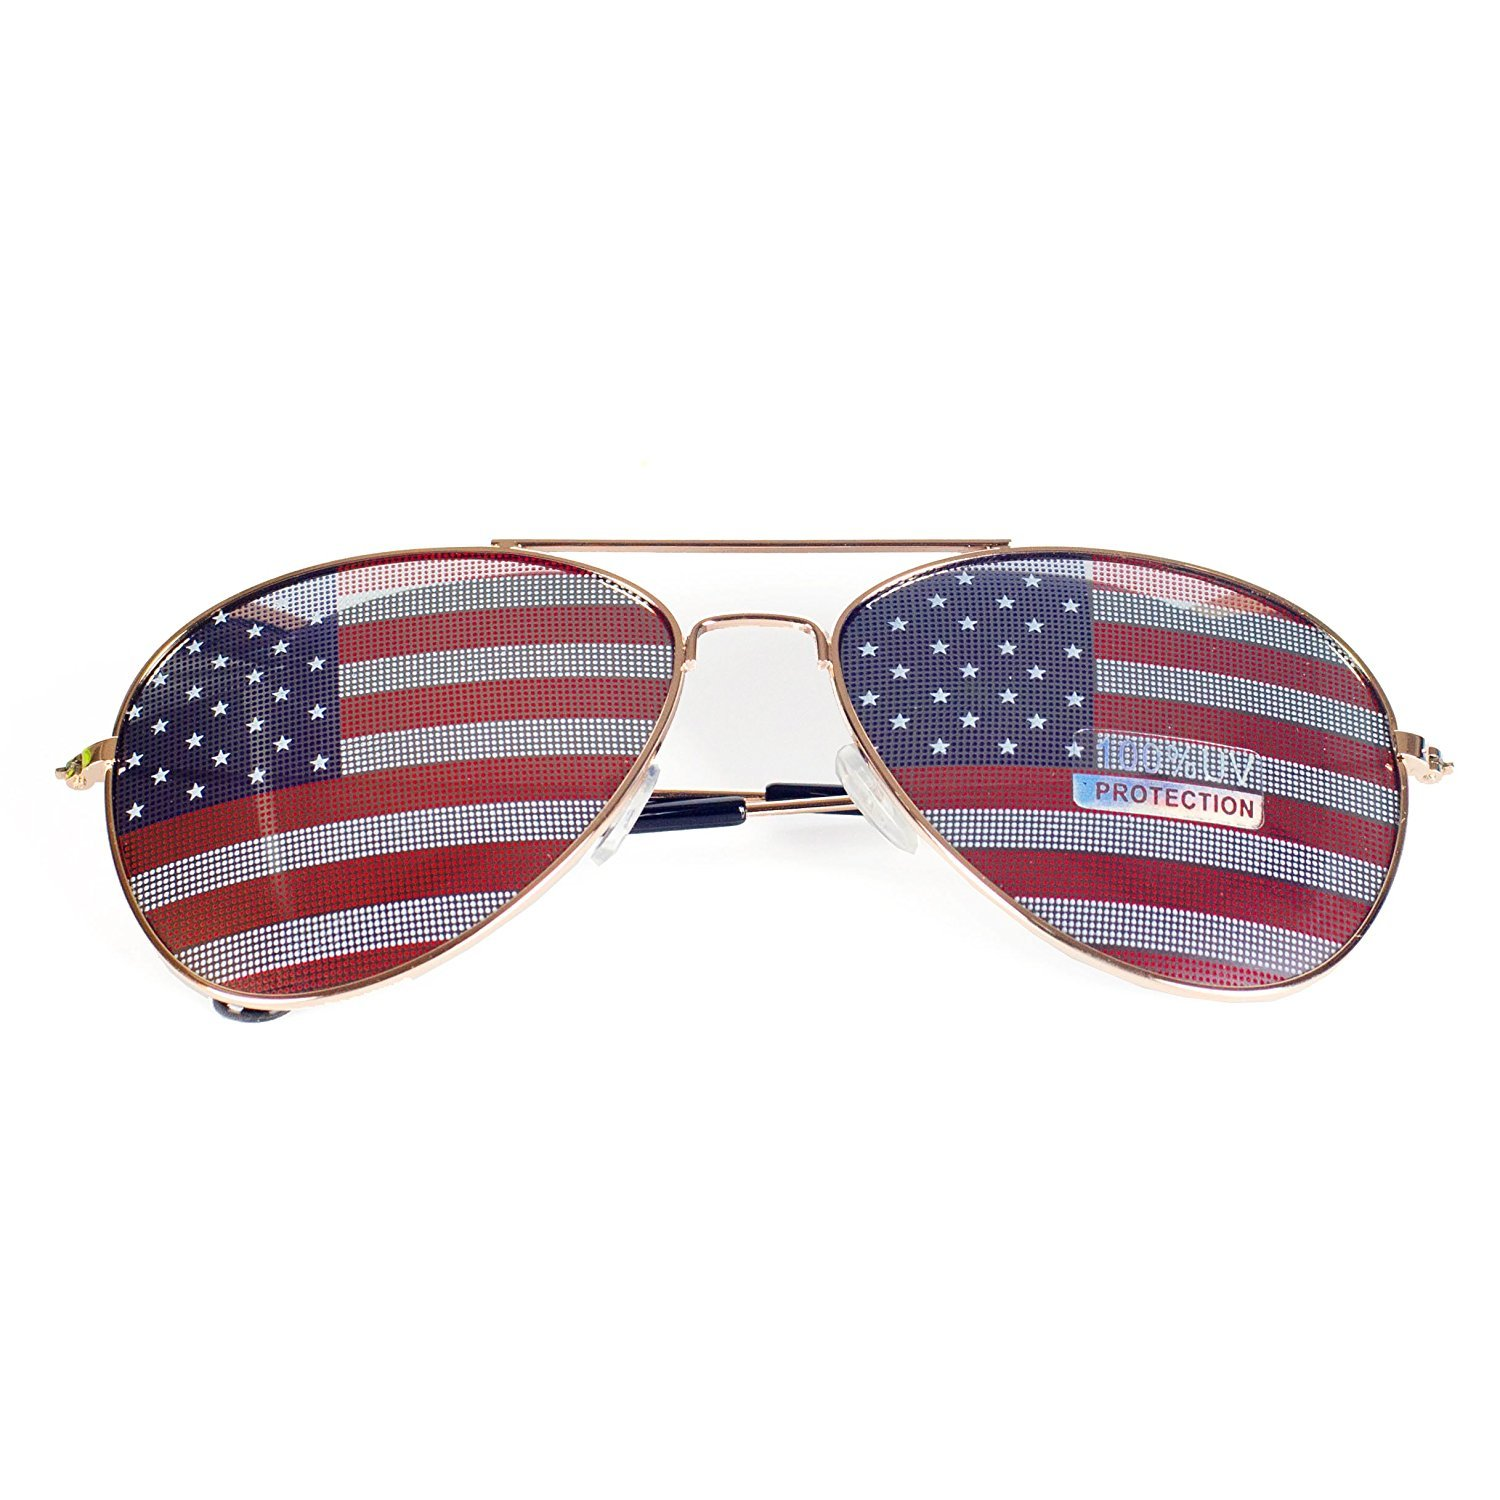 MJ Eyewear American Flag Aviator Sunglasses Glasses Gift Box (3 Pack Gold, USA FLAG)